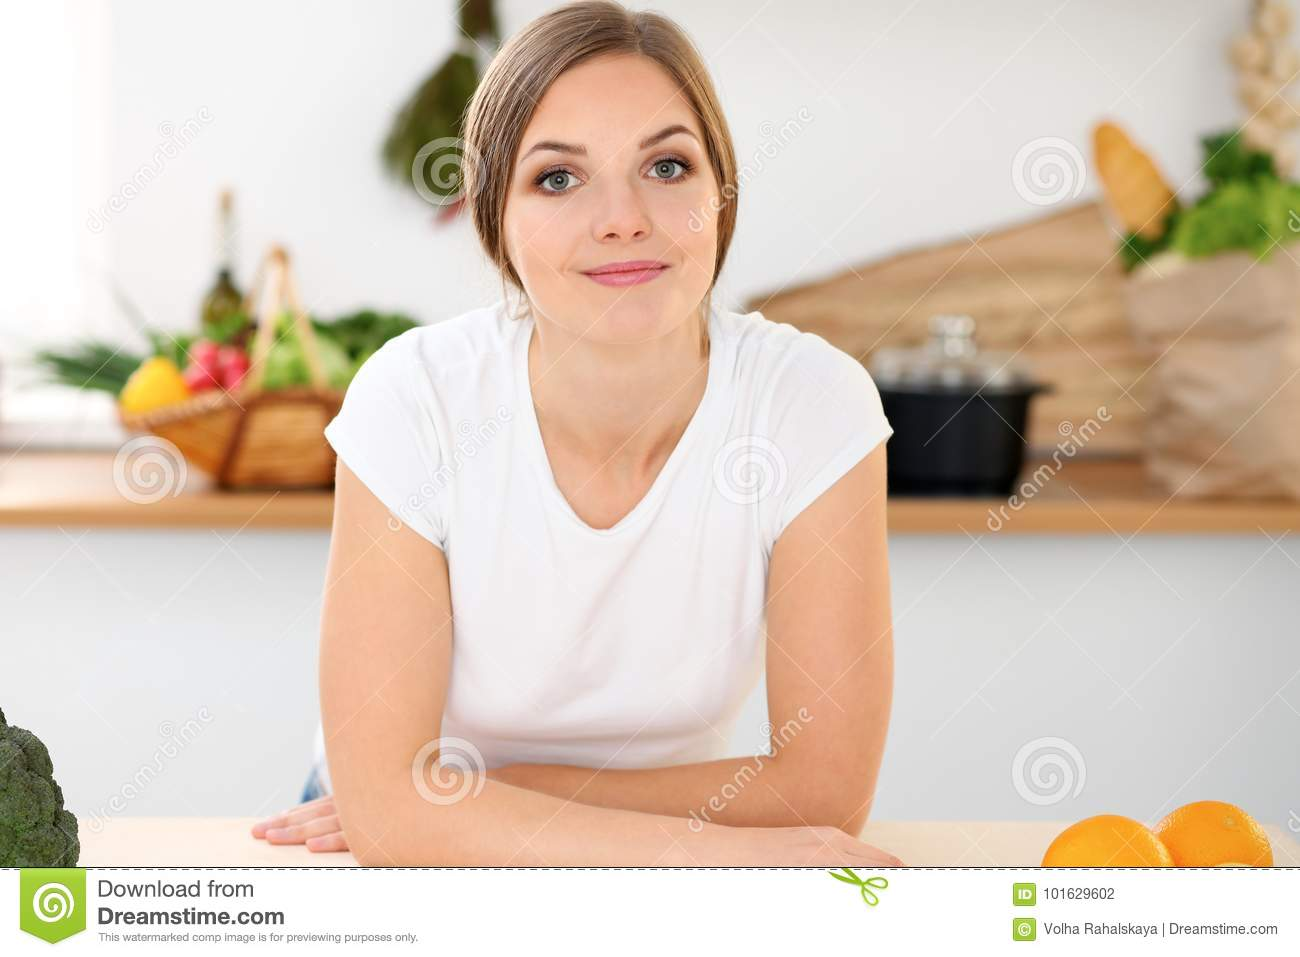 Young woman is ready for cooking in a kitchen. Housewife sitting at the table and looking at the camera.